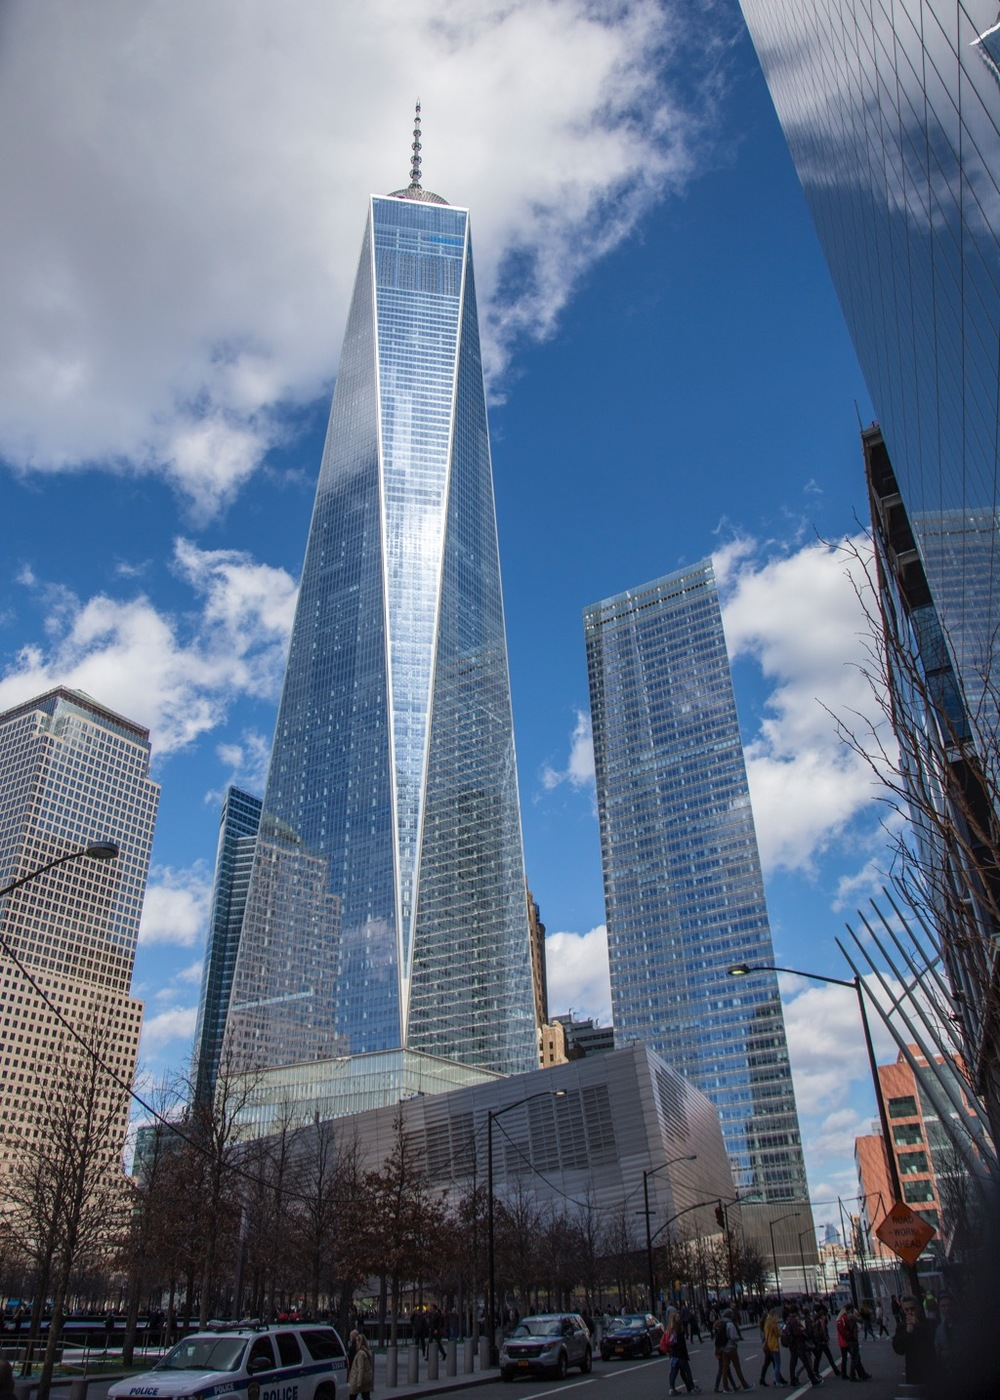 A view of the new World Trade Center